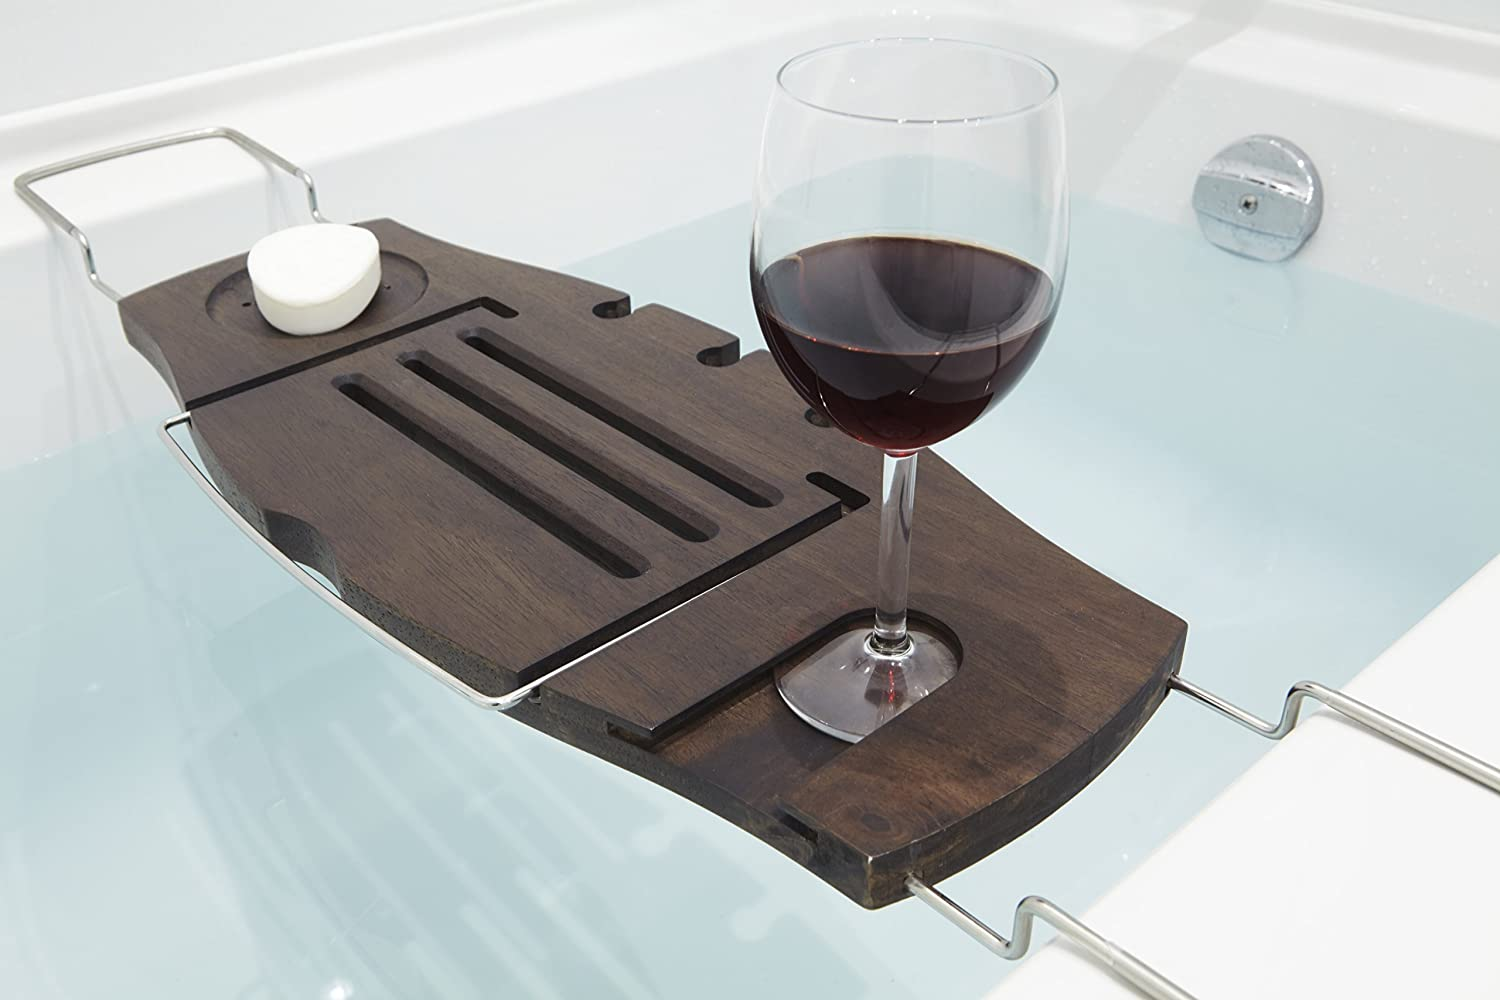 Amazon.com: Umbra Aquala Bathtub Caddy, Walnut: Home & Kitchen